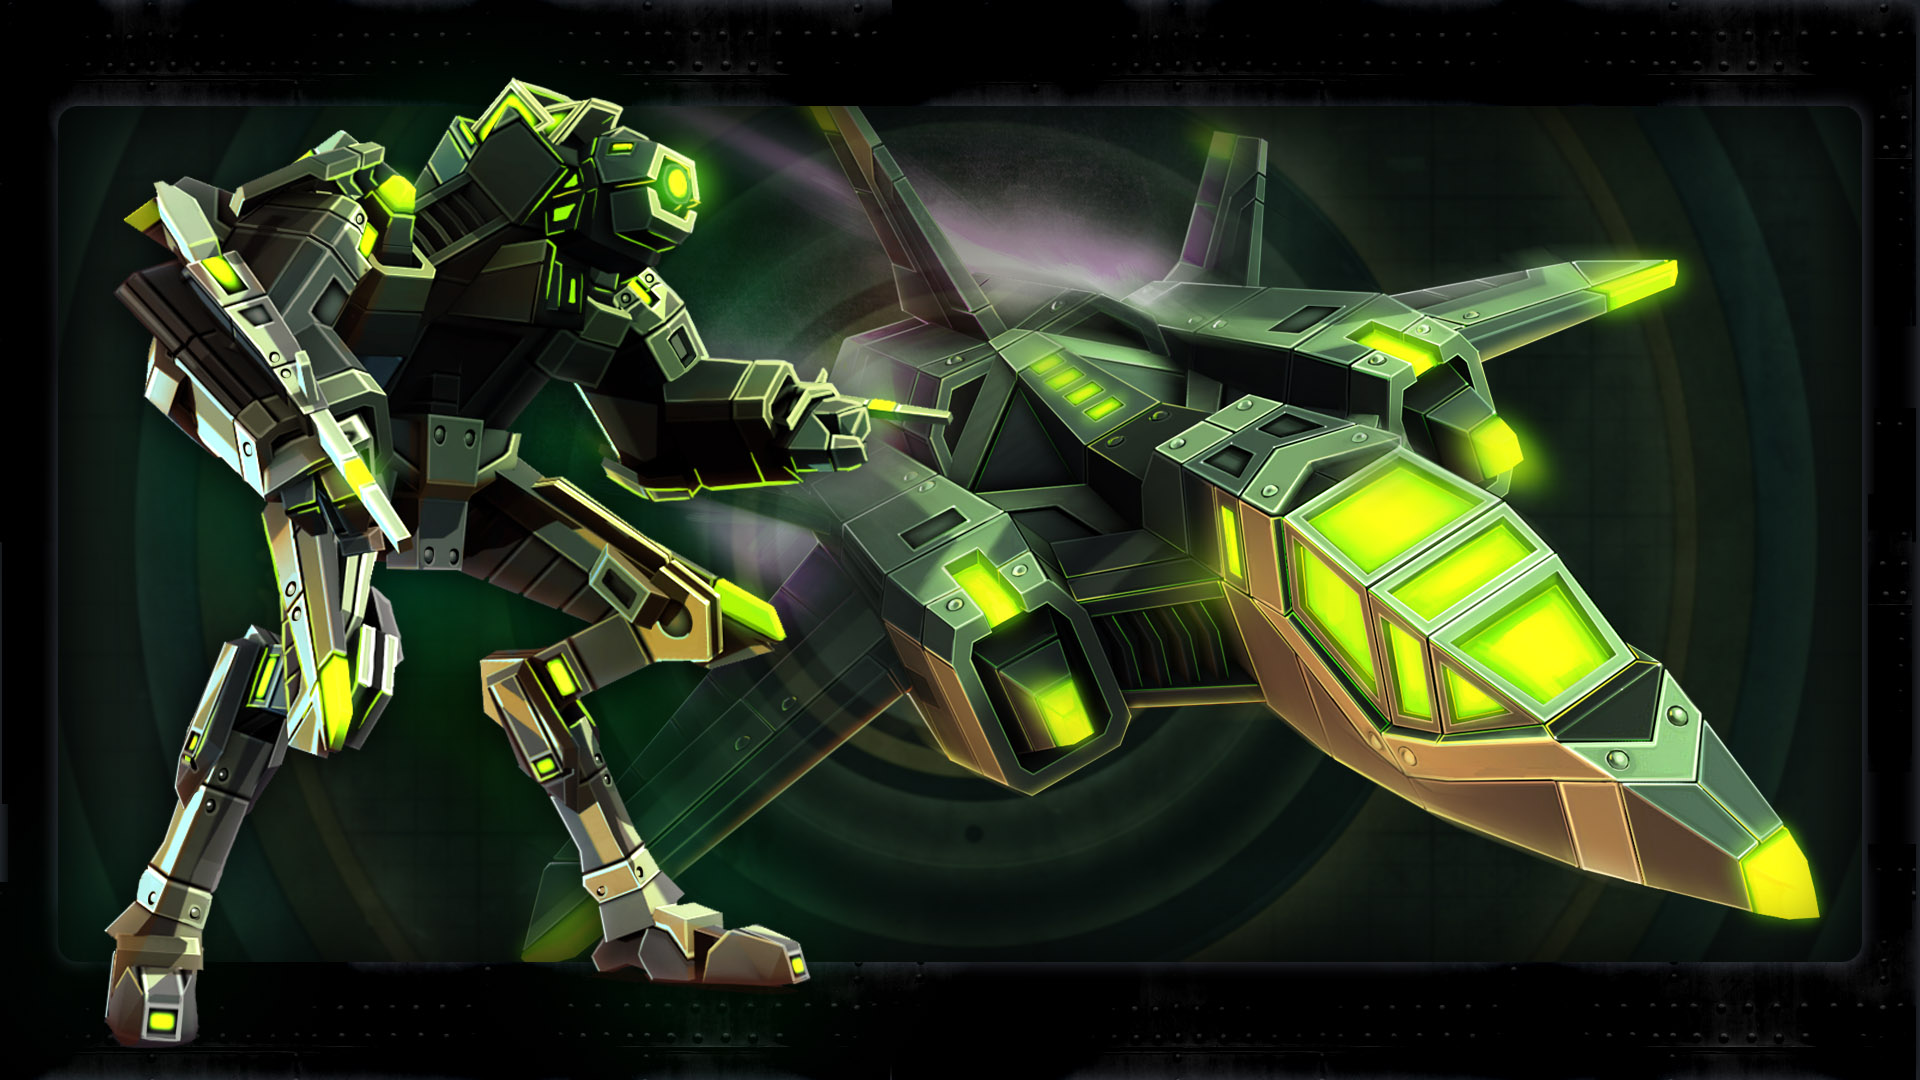 AirMech Forums - Carbon Games • View topic - Wallpaper sticky?